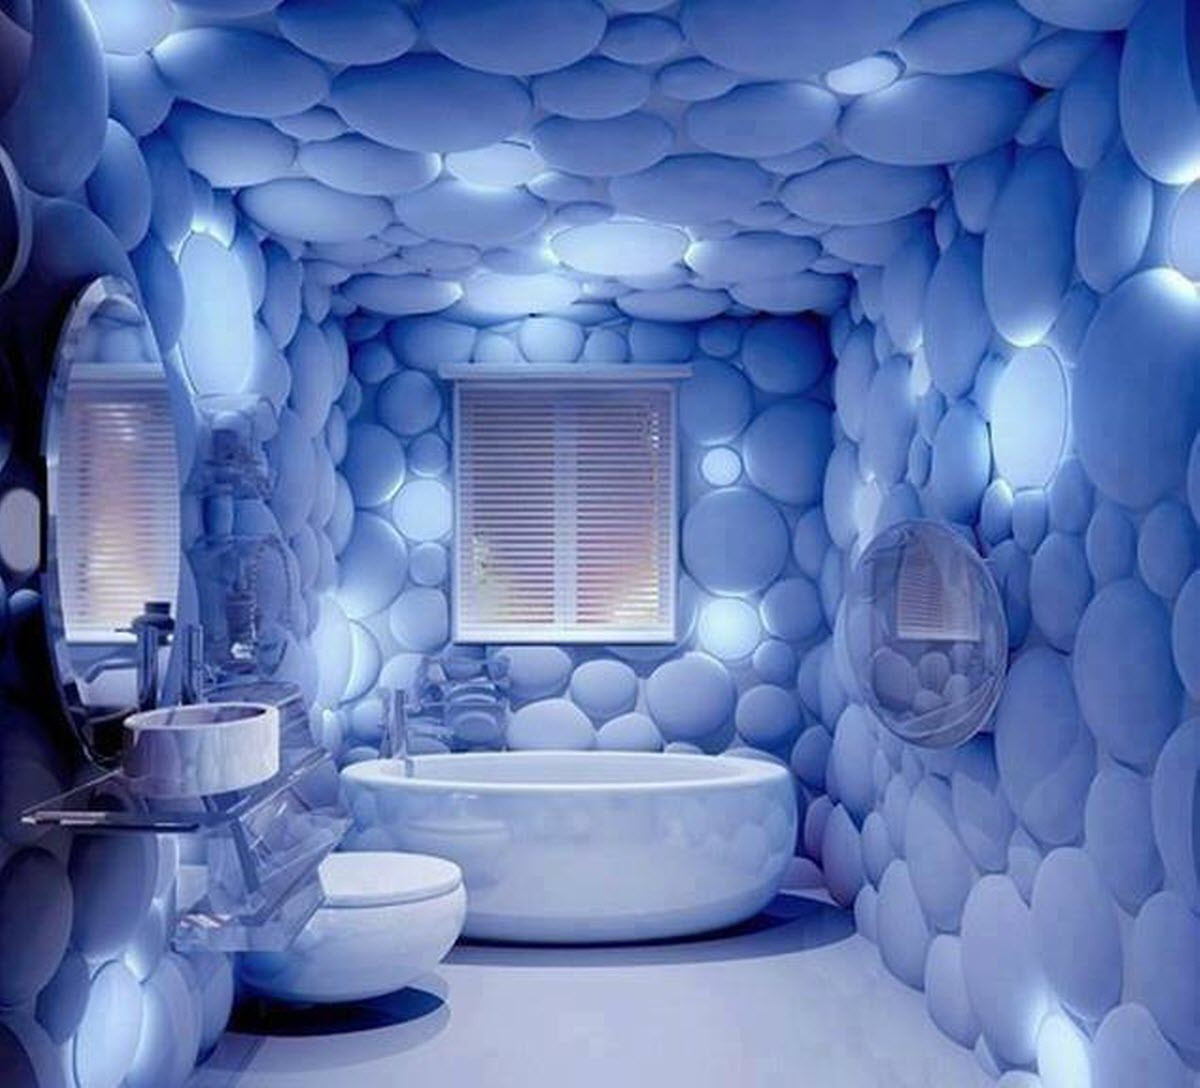 Unusual and Wonderful Bathroom Designs 22 Baños Que Puedes Encontrar Alrededor Del Mundo